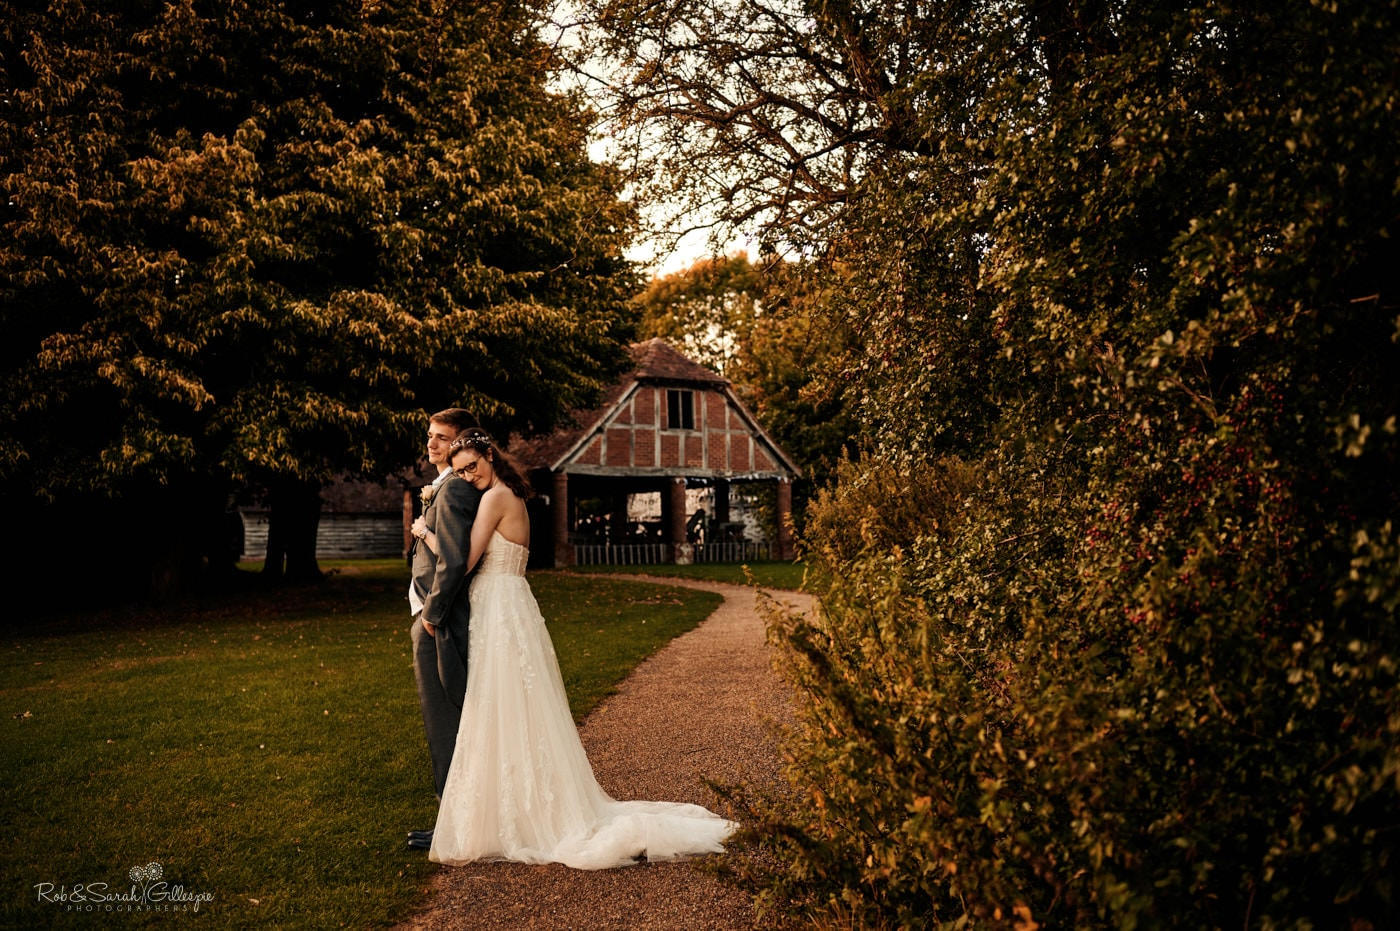 Happy bride and groom cuddling in front of old barn at Avoncroft Museum wedding